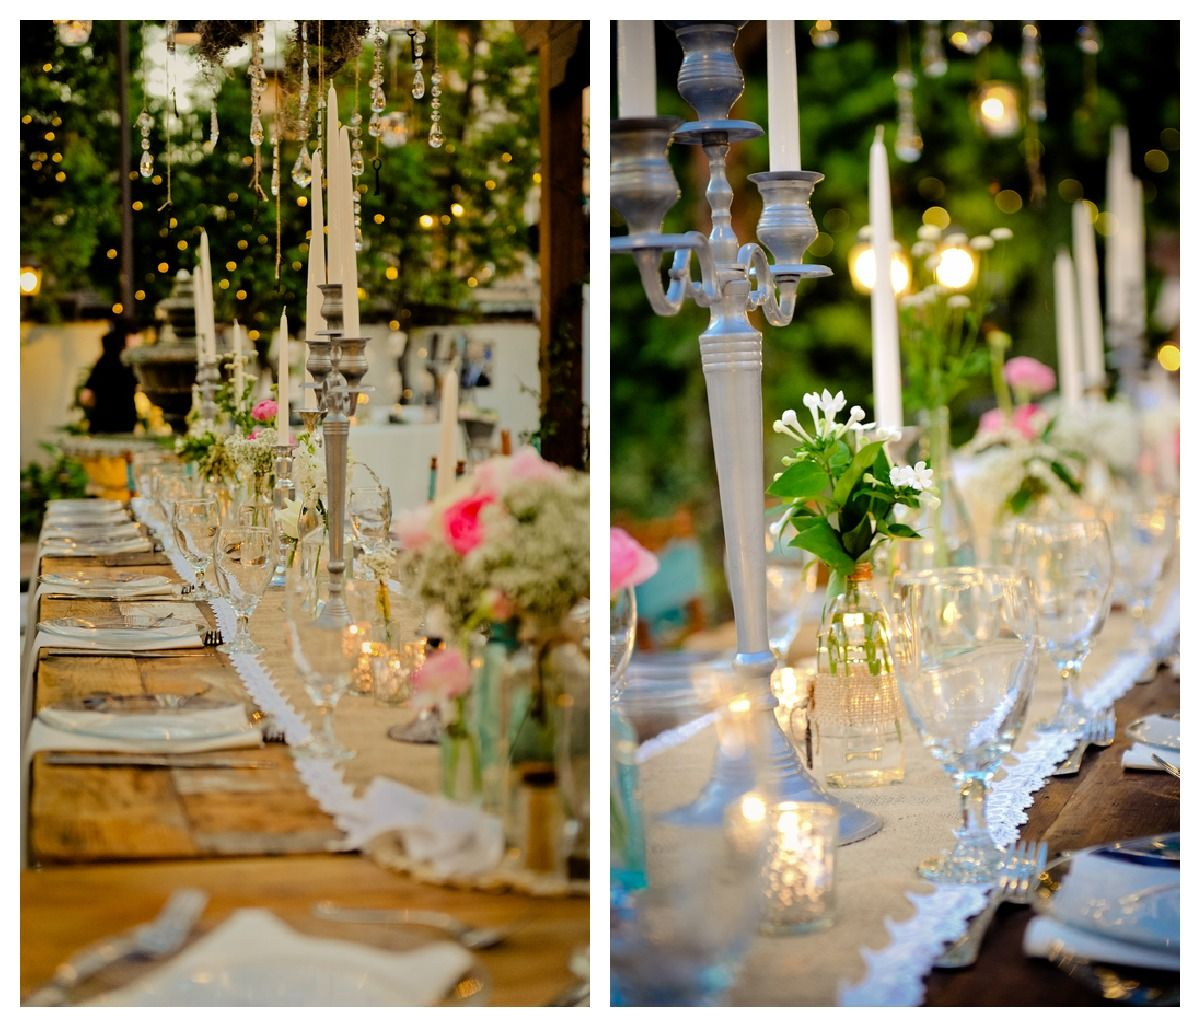 Rustic Vintage Wedding Decor Vintage Chic Style Wedding Country Style Vintage And Rustic